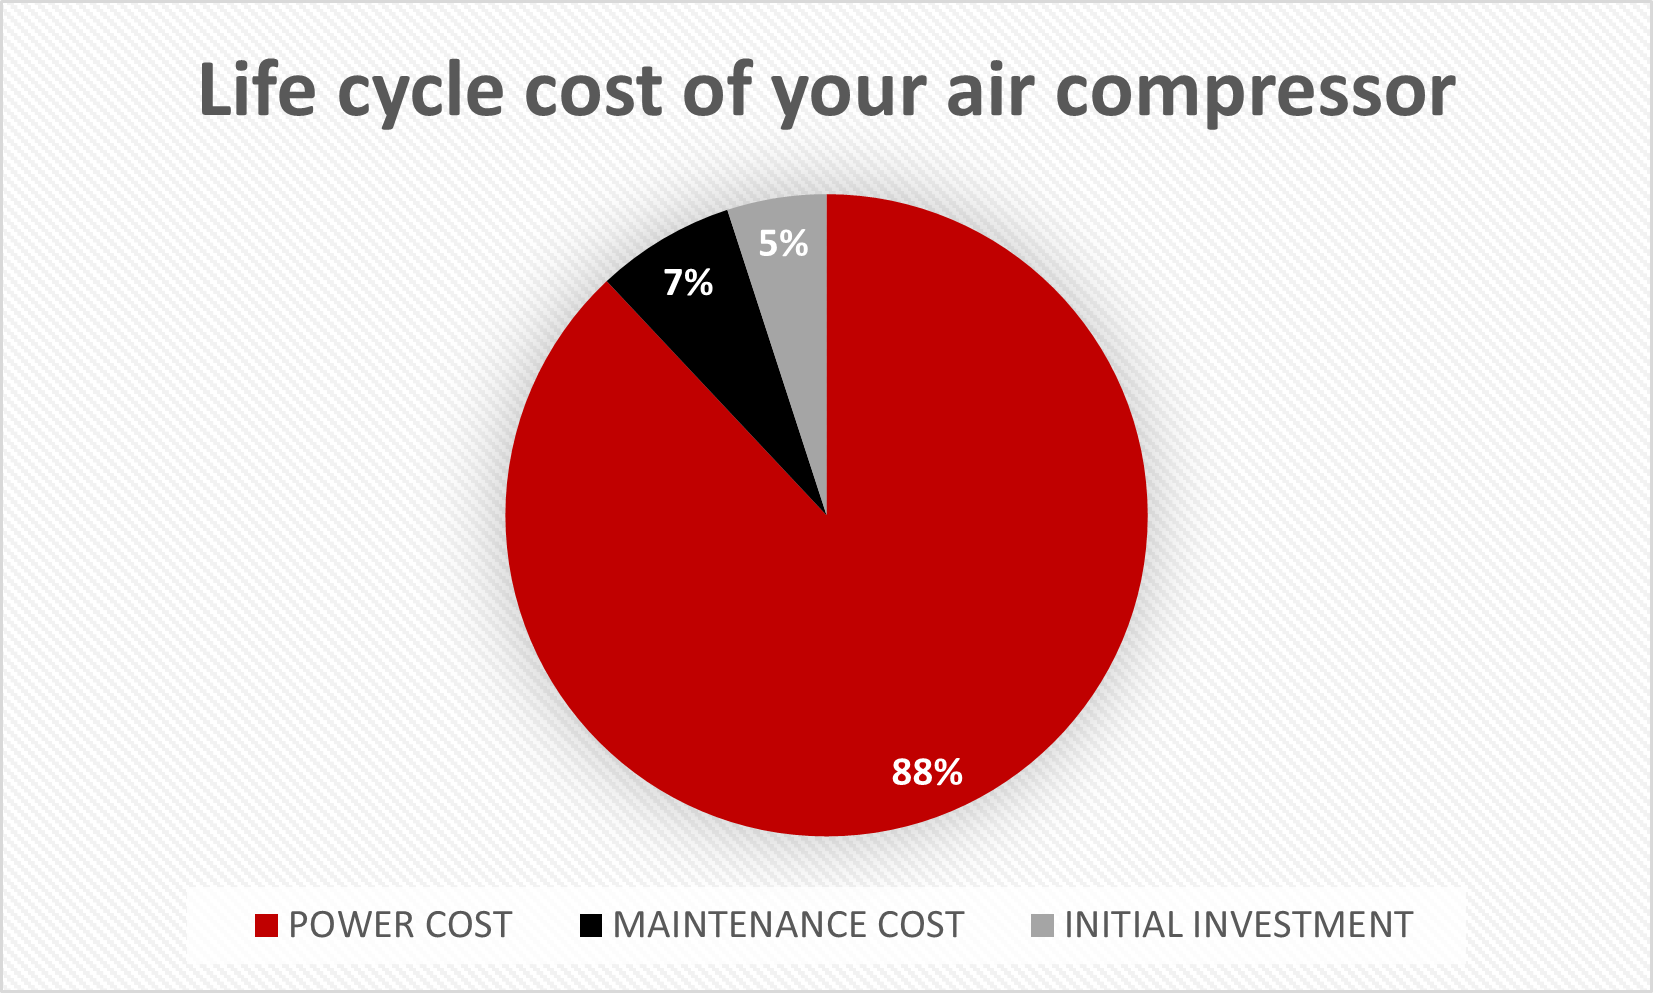 Identify the real life cycle costs of your air compressor